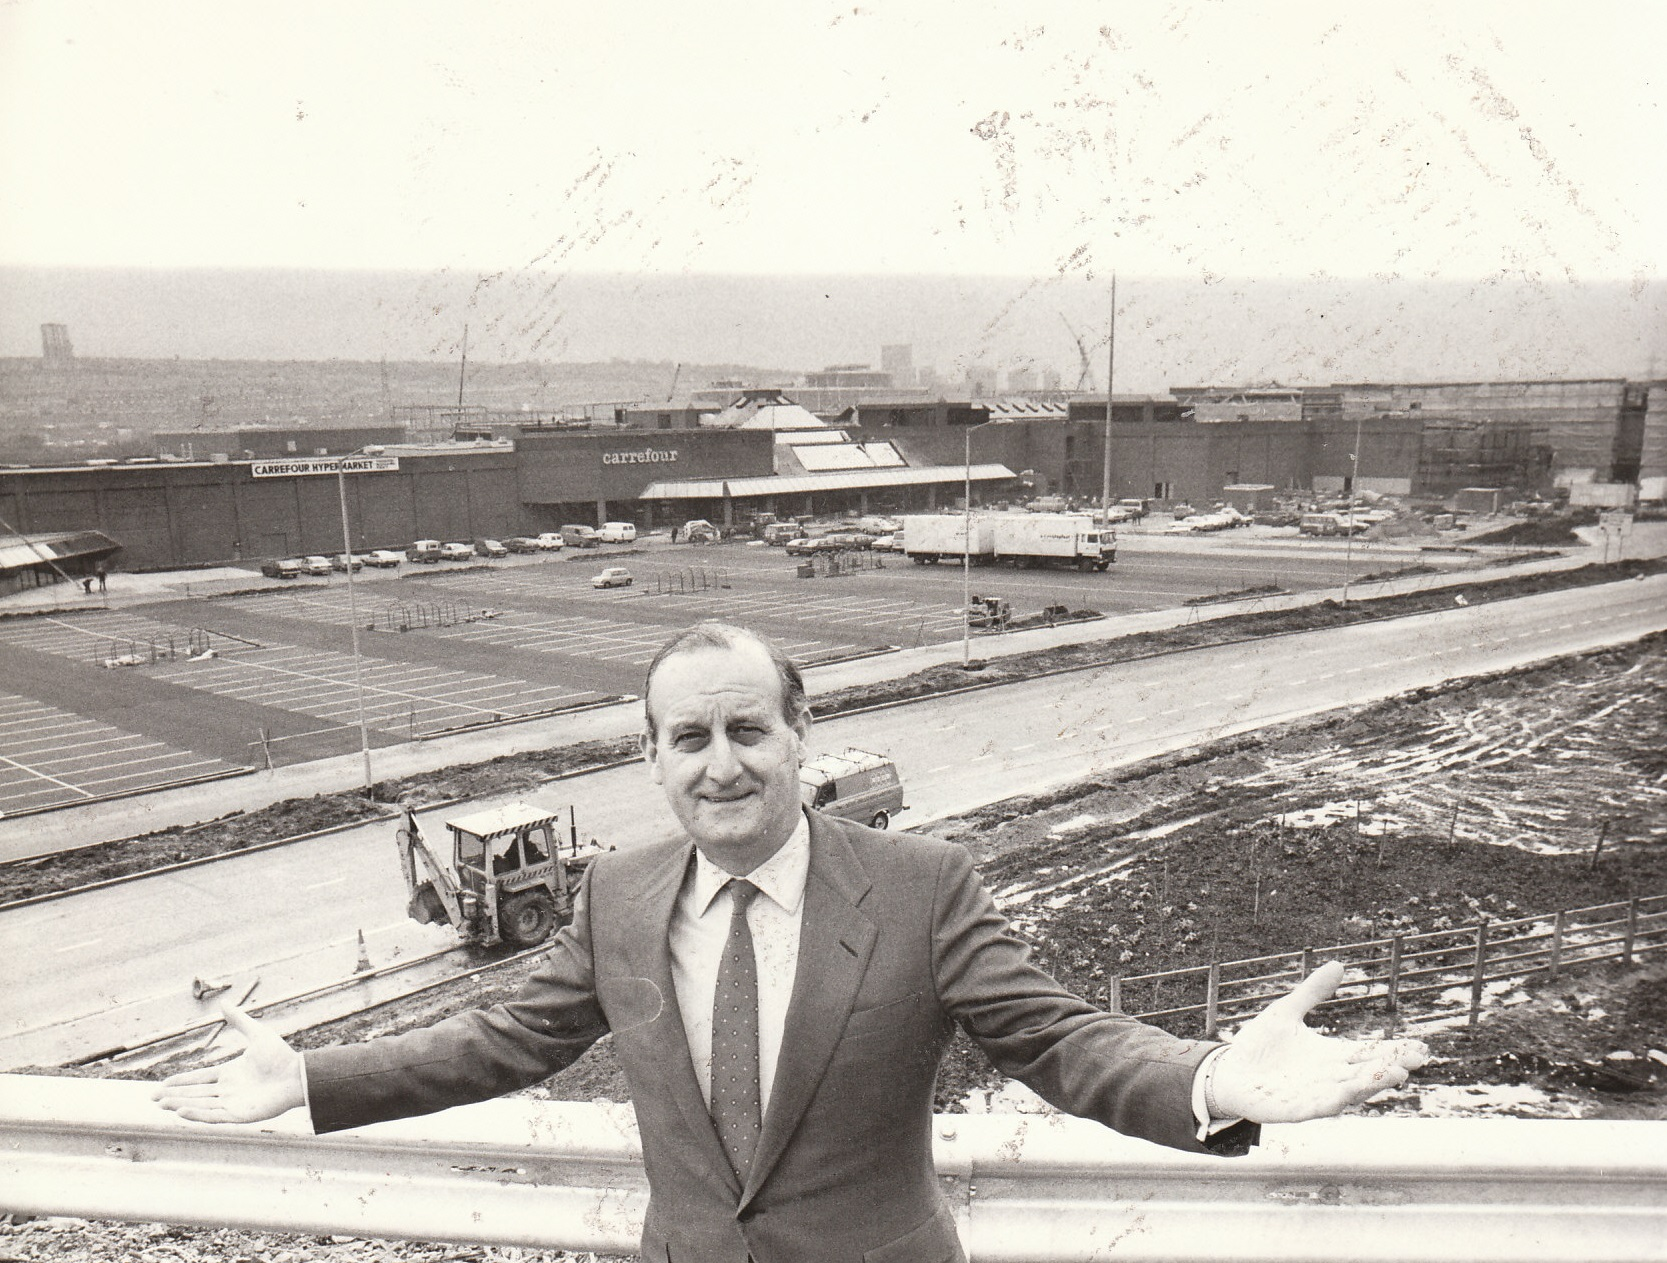 PROGRESS: Intu Properties says its Hammerson deal will create a stronger group. Its Gateshead MetroCentre was the vision of Sir John Hall, who is pictured at the site back in April 1986